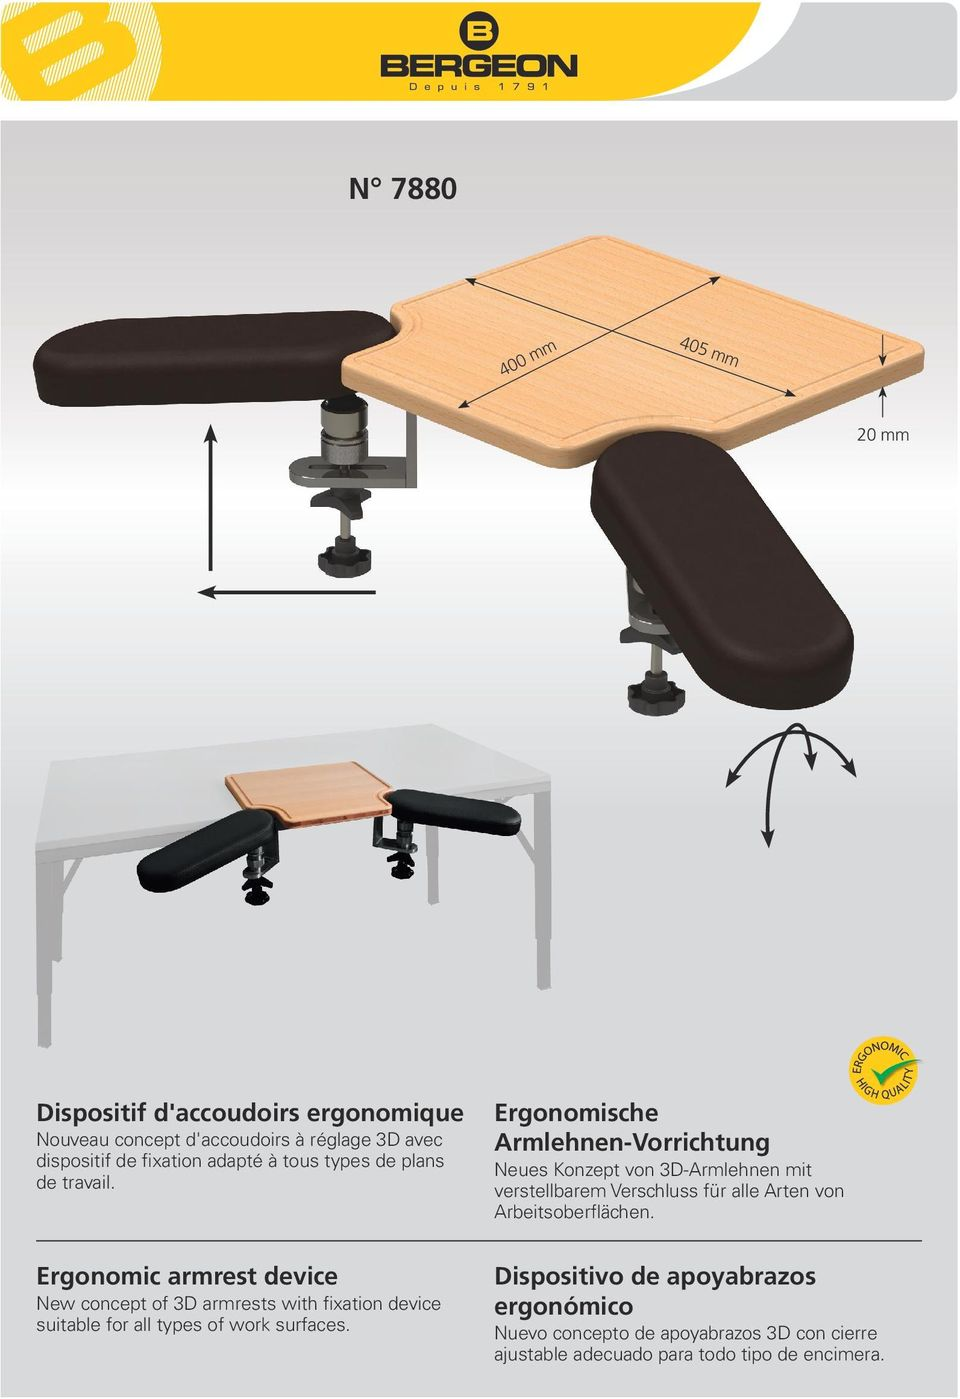 Ergonomic armrest device New concept of 3D armrests with fixation device suitable for all types of work surfaces.